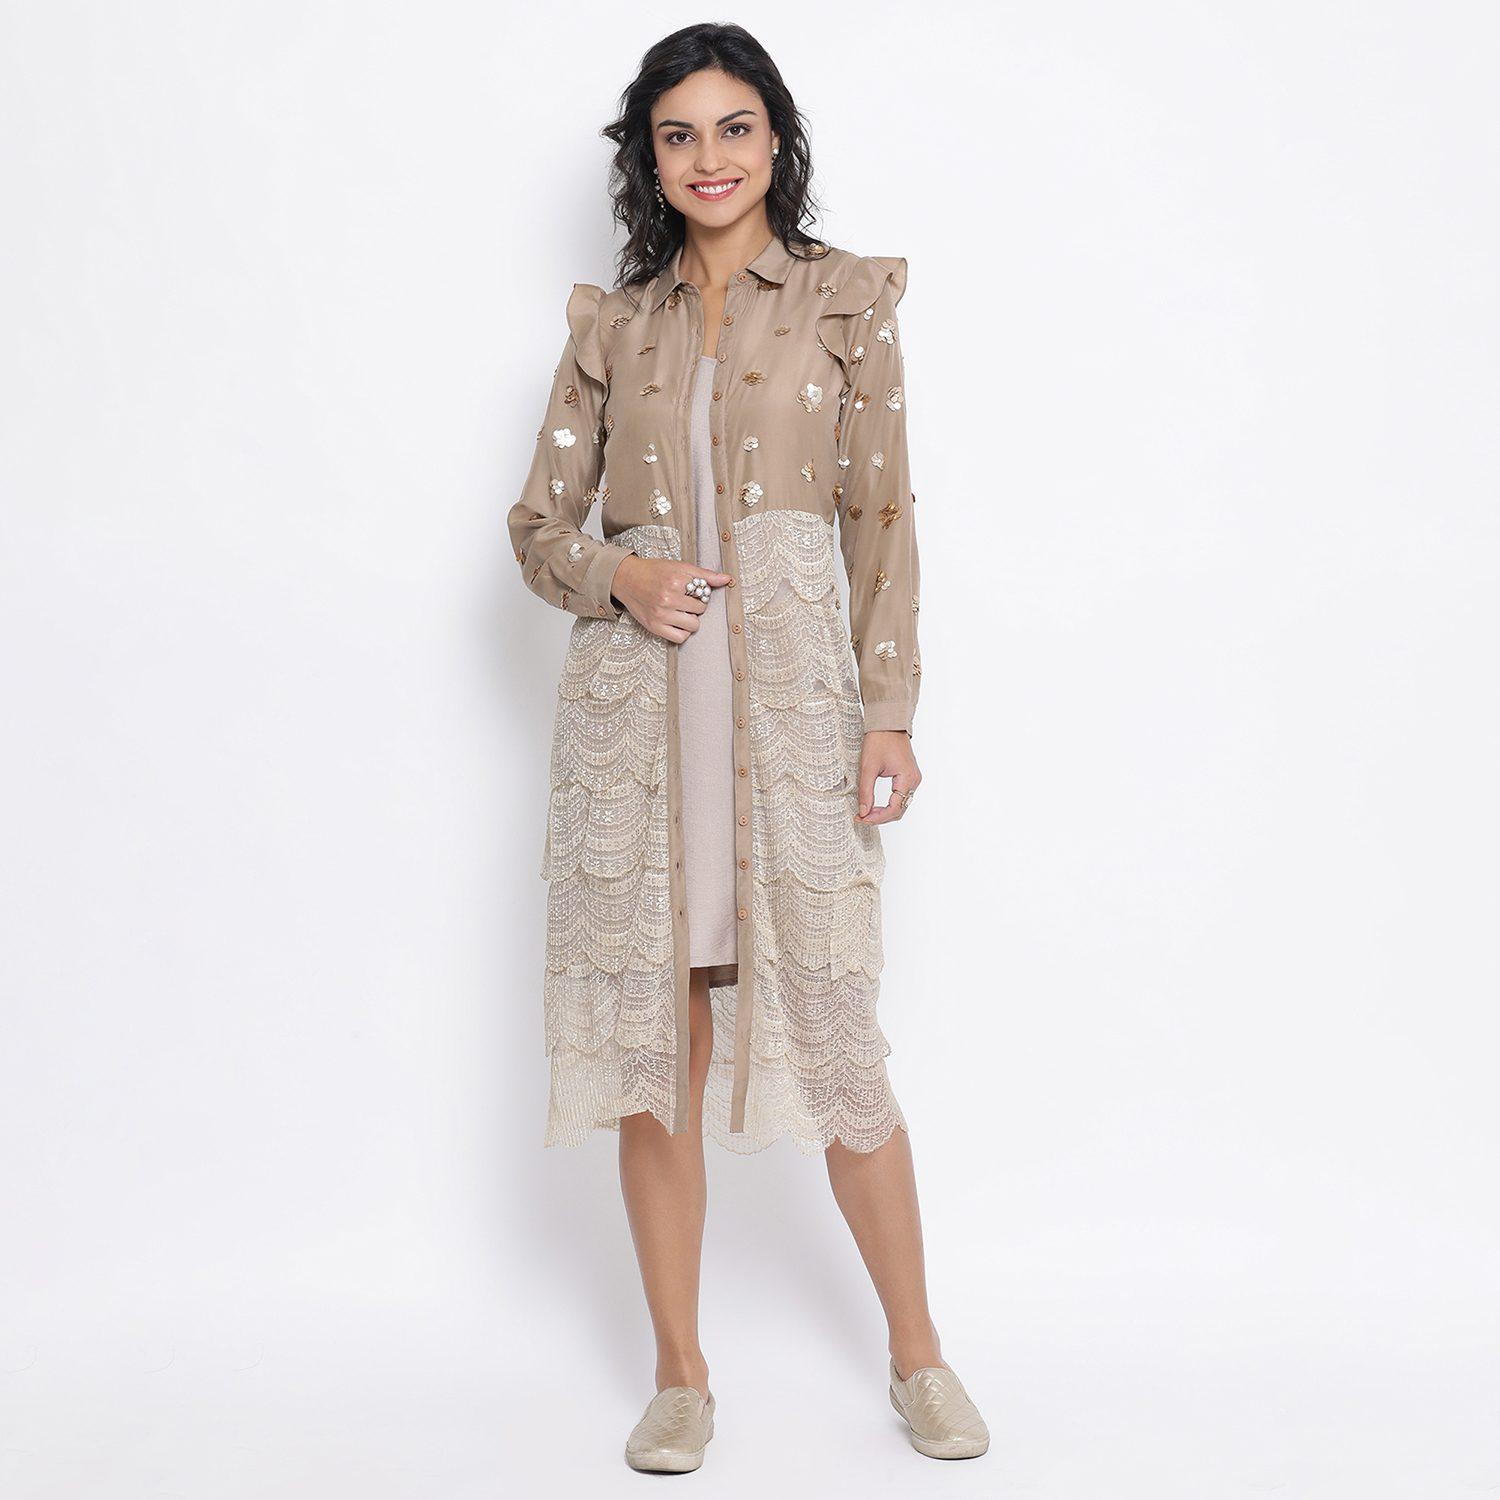 Buy Beige Lace Tunic With Gold Sequence Embroidery For Women